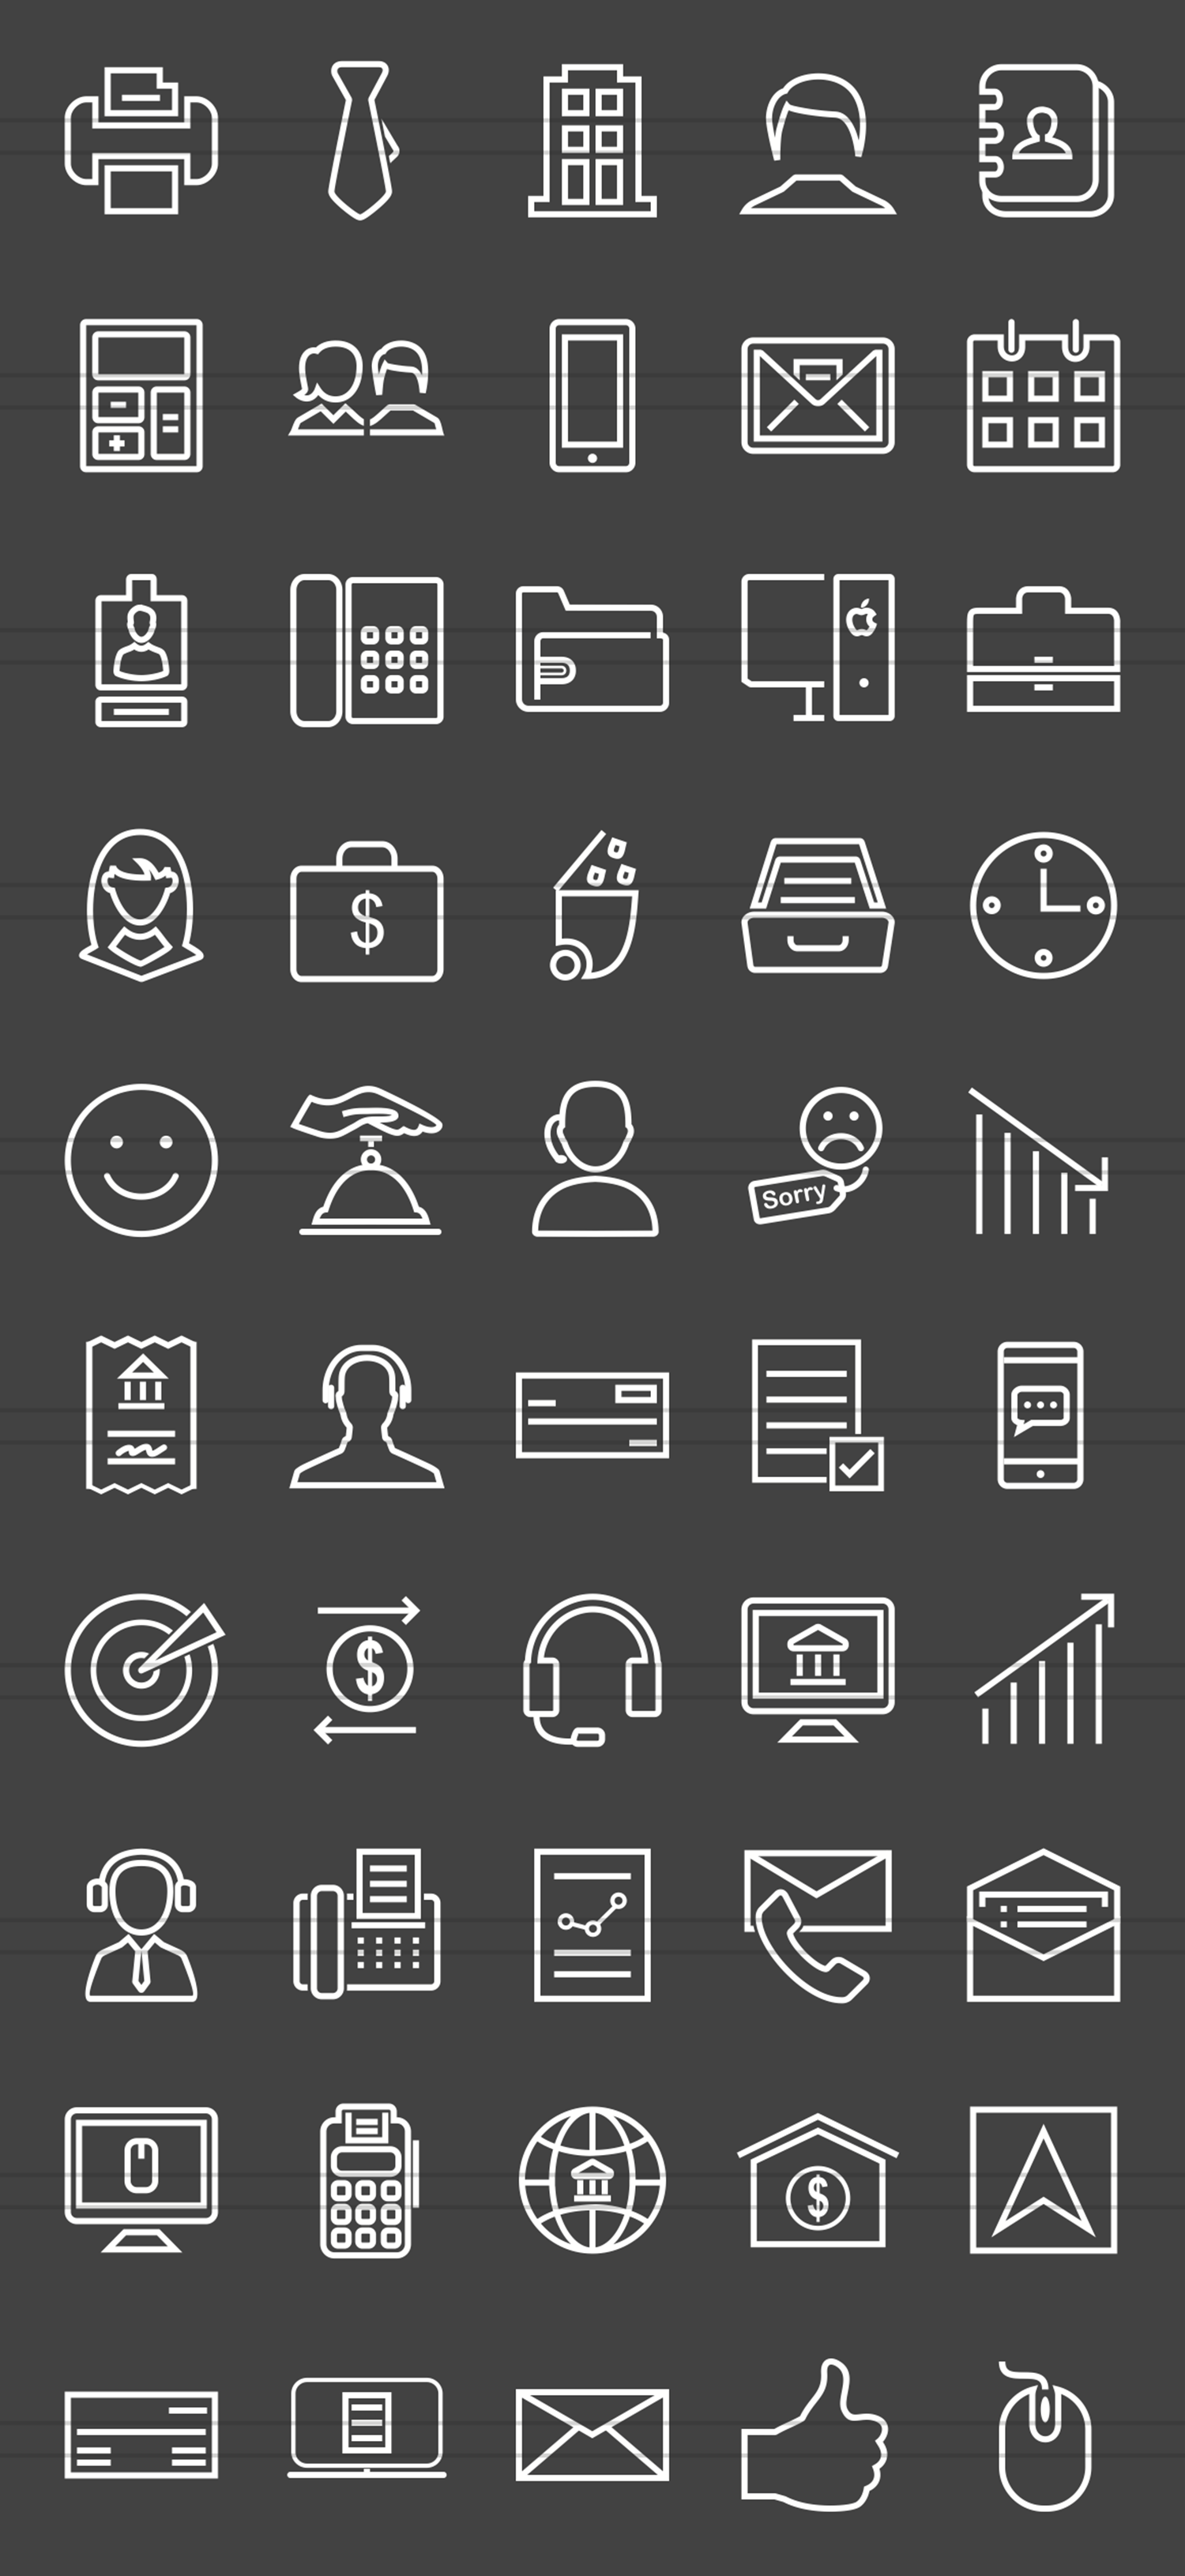 50 Business Line Inverted Icons example image 2